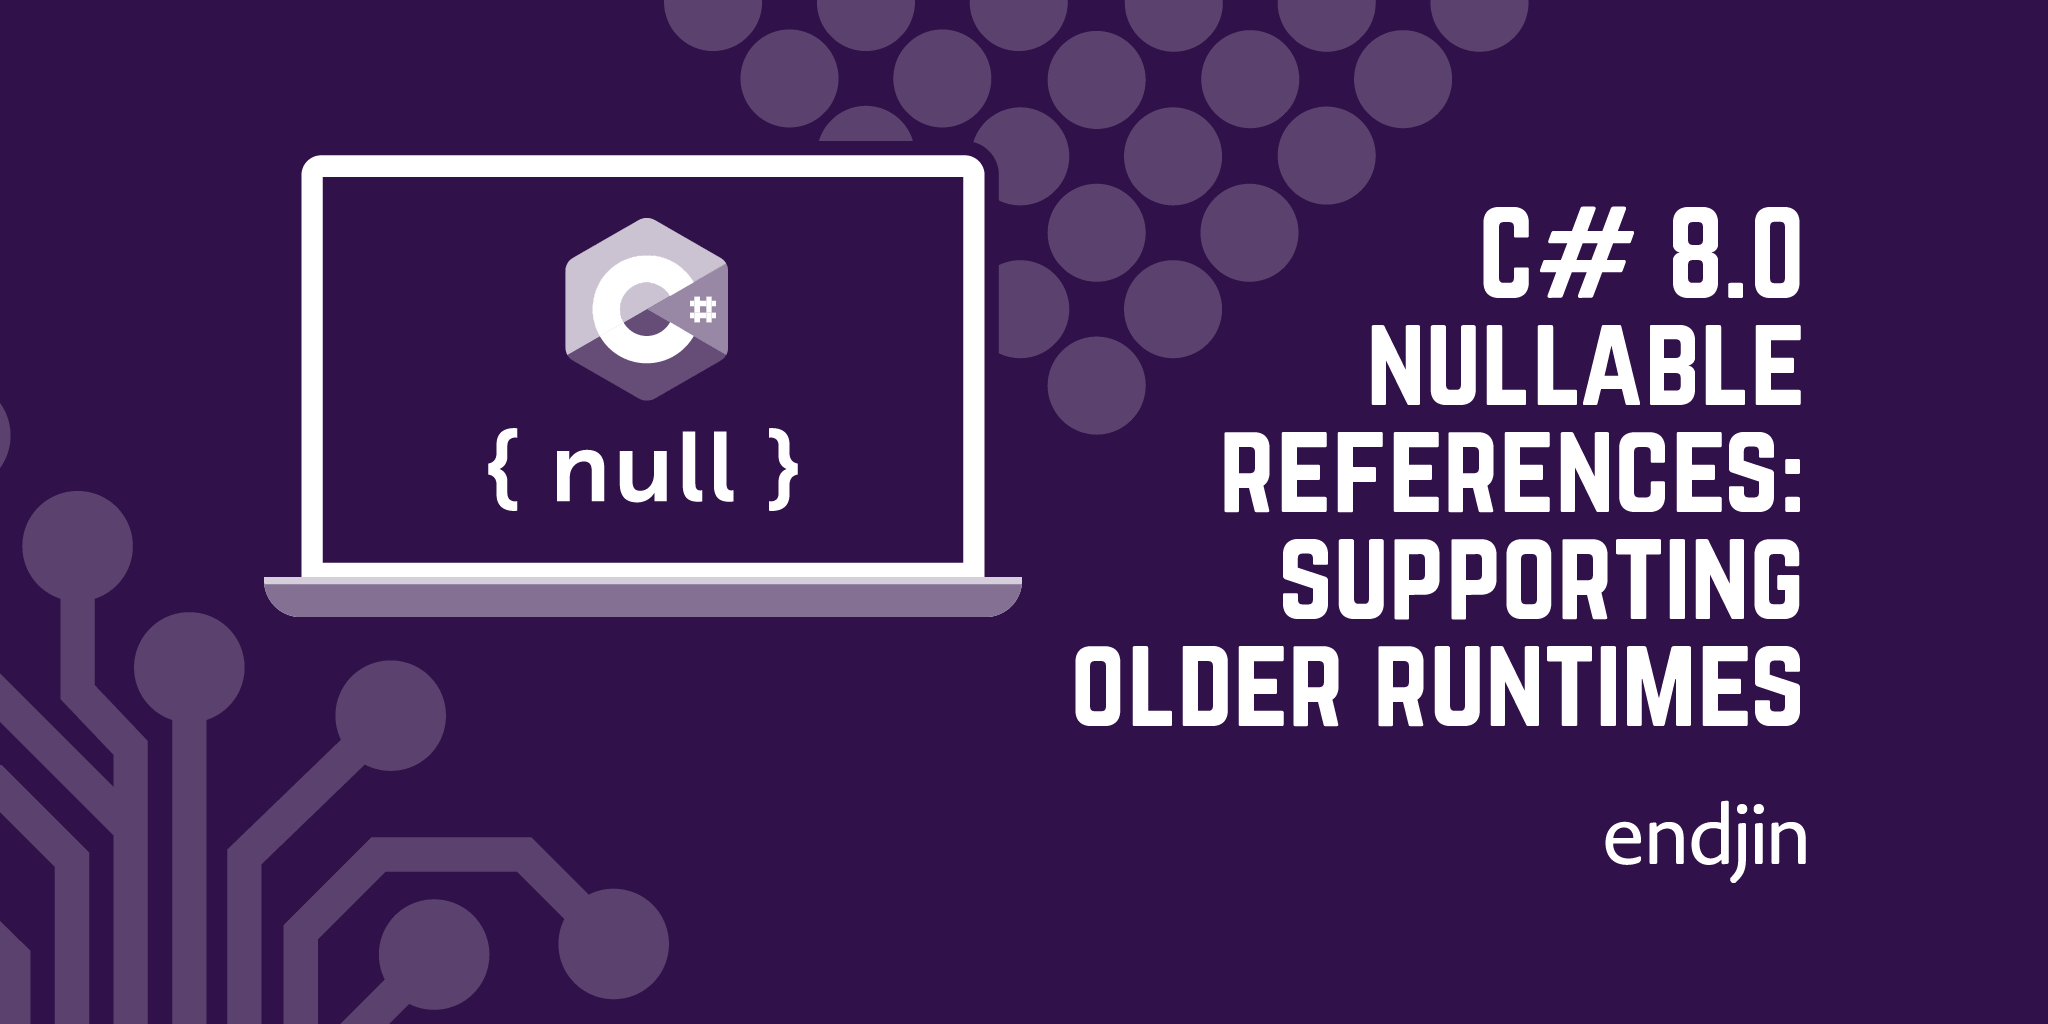 C# 8.0 nullable references: supporting older runtimes